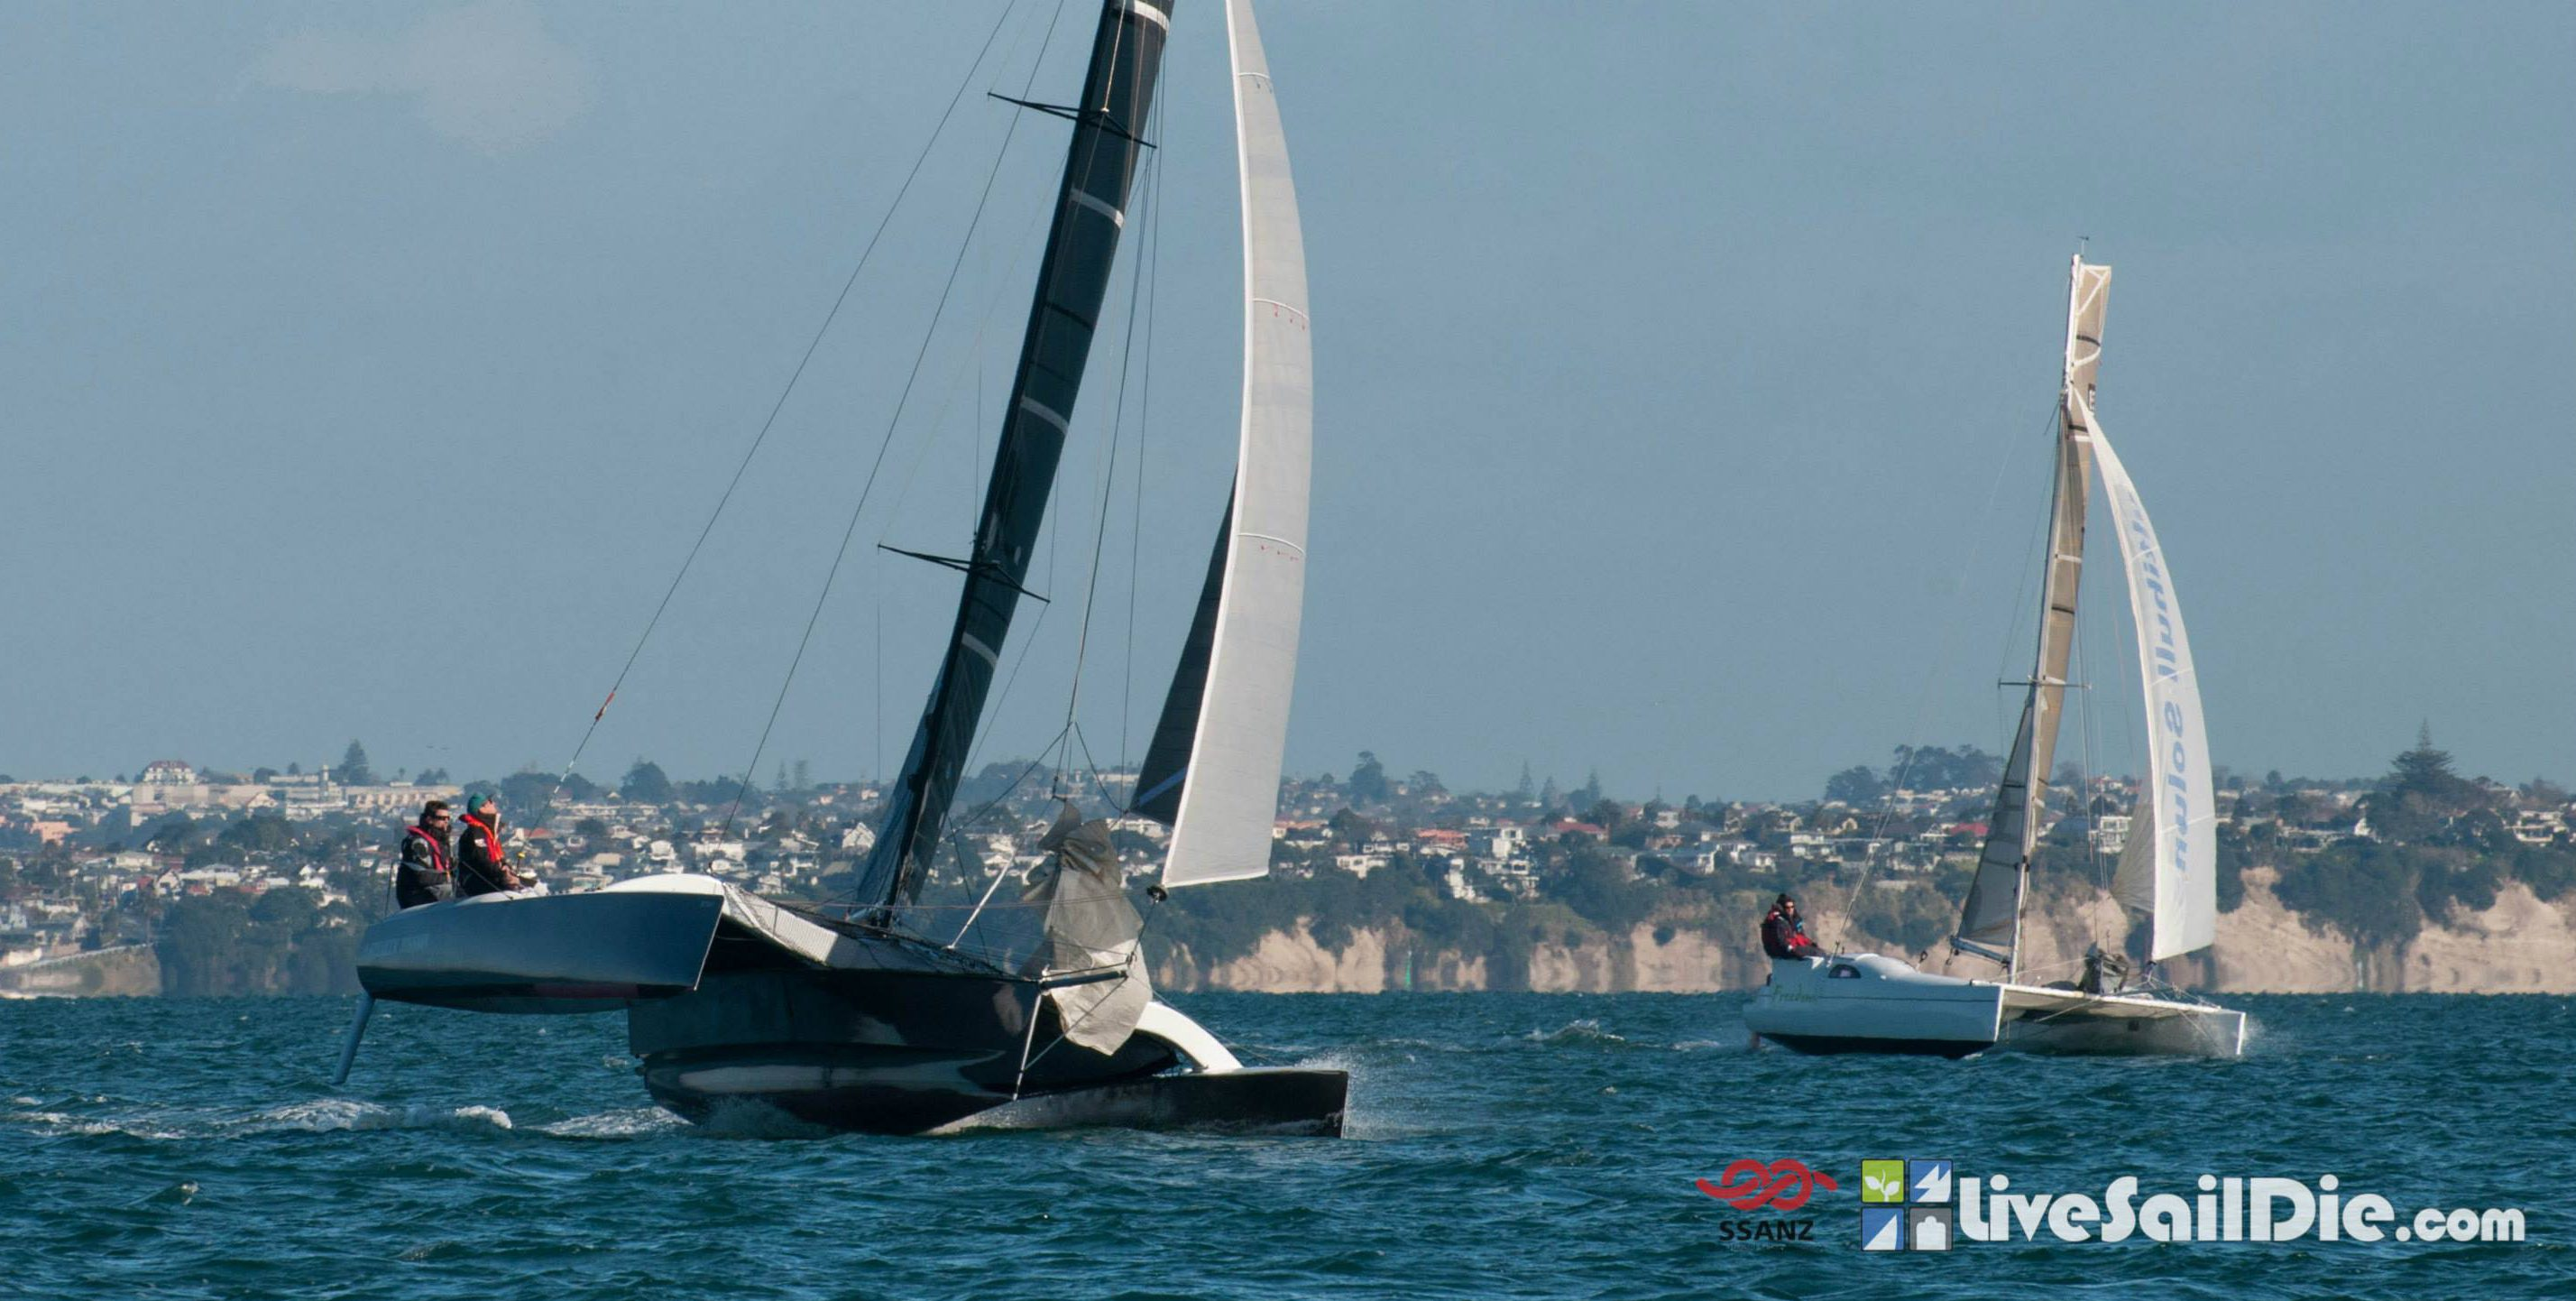 Stealth Mission and Freedom racing in the SSANZ Triple Series